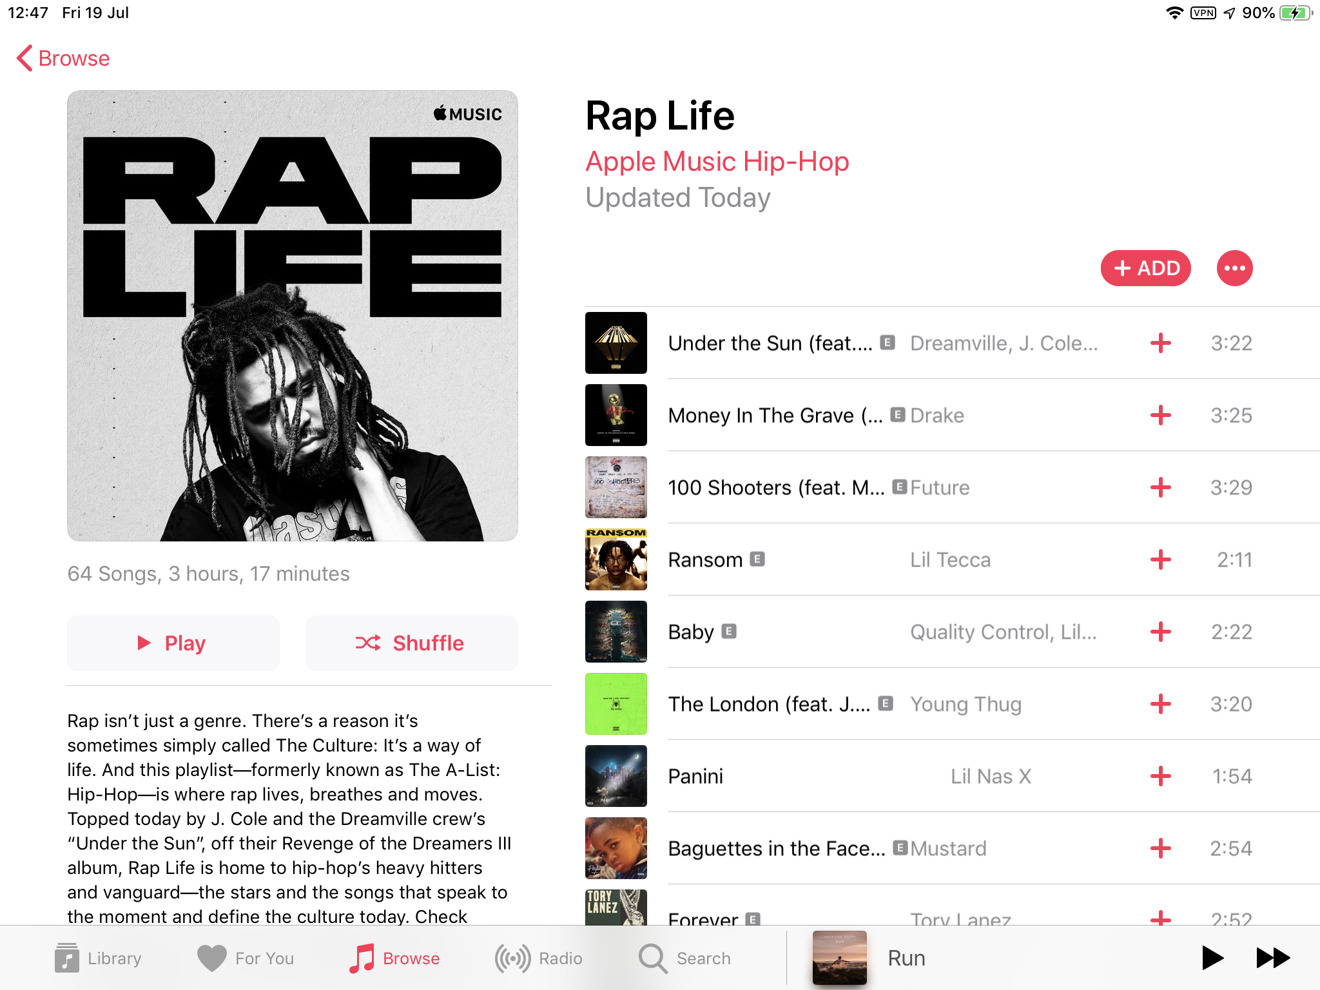 The Rap Life playlist in Apple Music